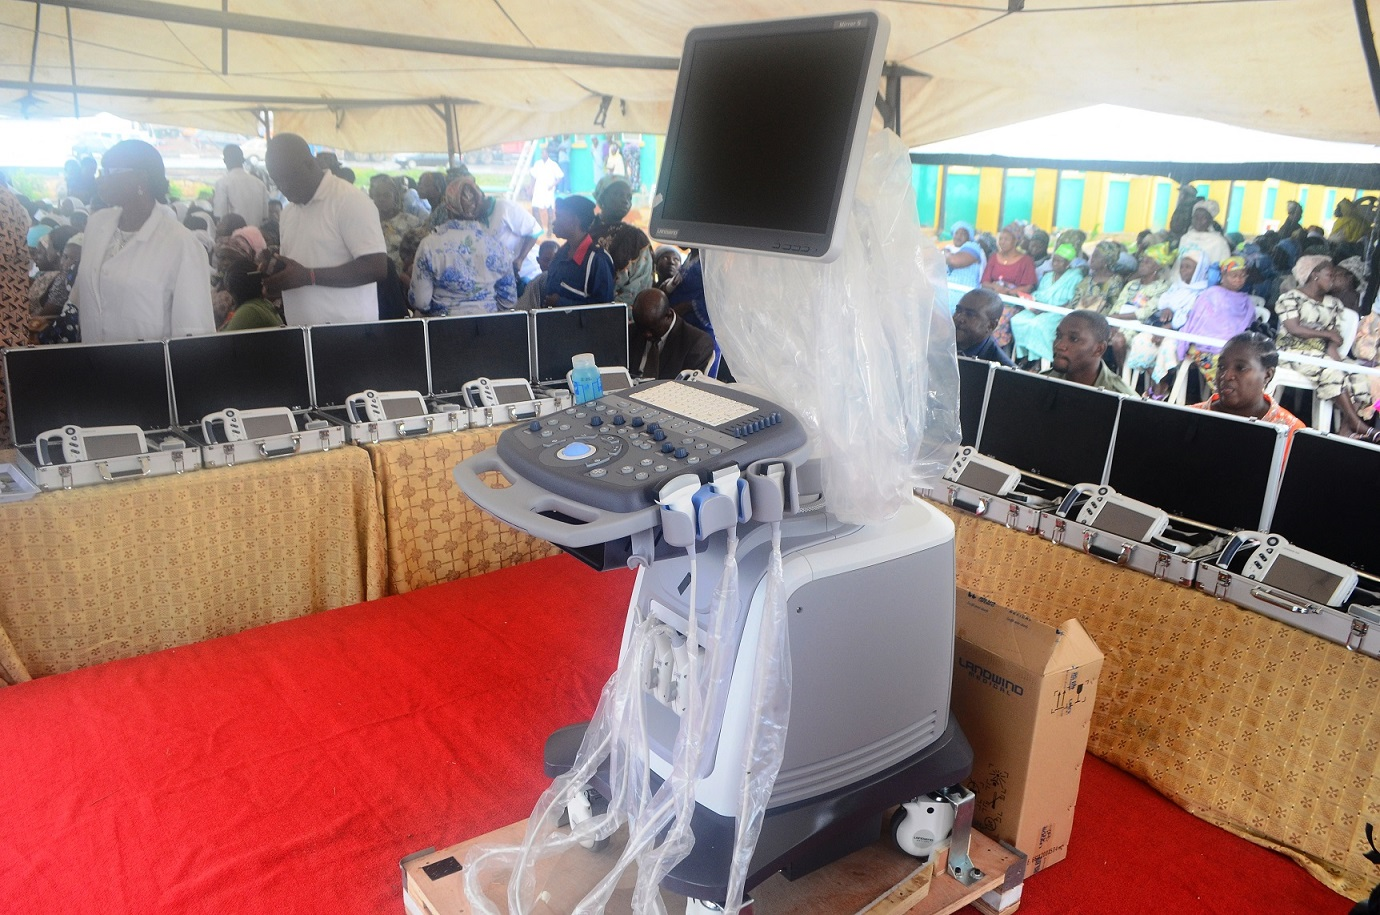 The newly Commissioned Hand-held Ultrasound Diagnostic (Touch Screen) Scanners and Mirror 3D (colour) Doppler Ultrasound Diagnostic Scanner distributed to State hospitals in Osun by Aregbesola's administration, at Nelson Mandela Freedom Park, Osogbo, State of Osun on Thursday 17-07-2014